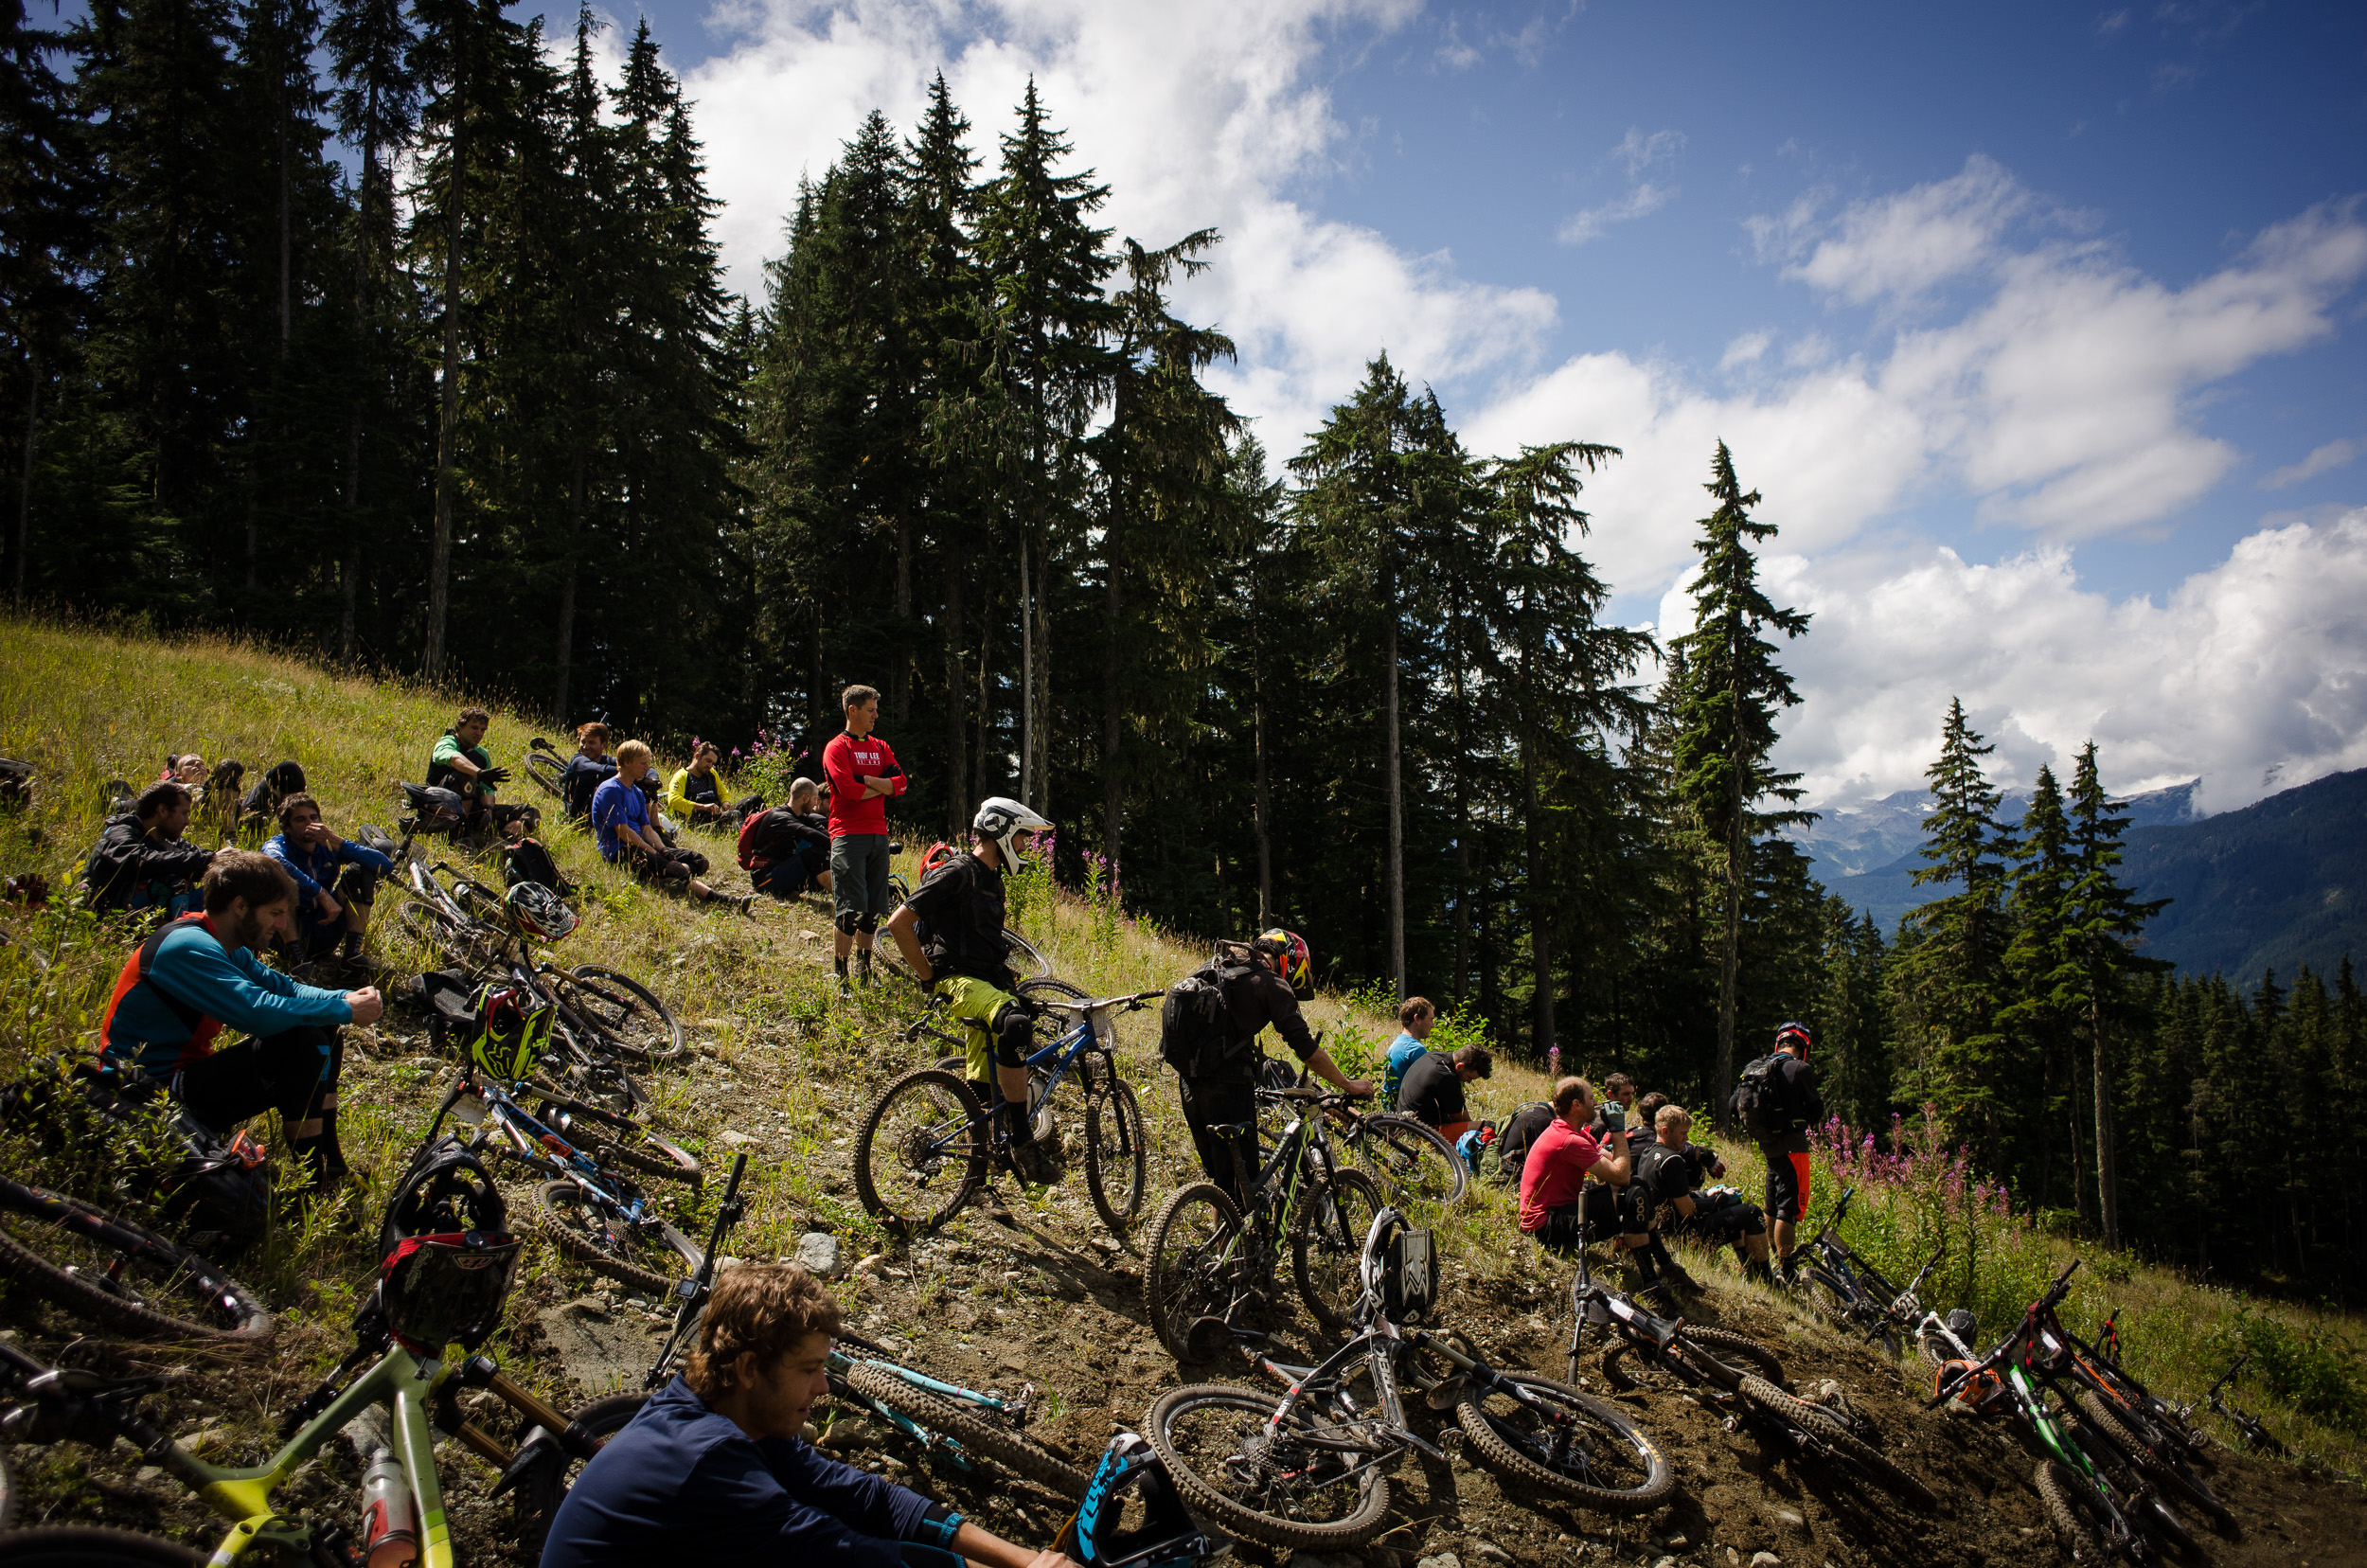 Racers wait to start Stage 4 of the 2015 Enduro World Series at Whistler in British Columbia.